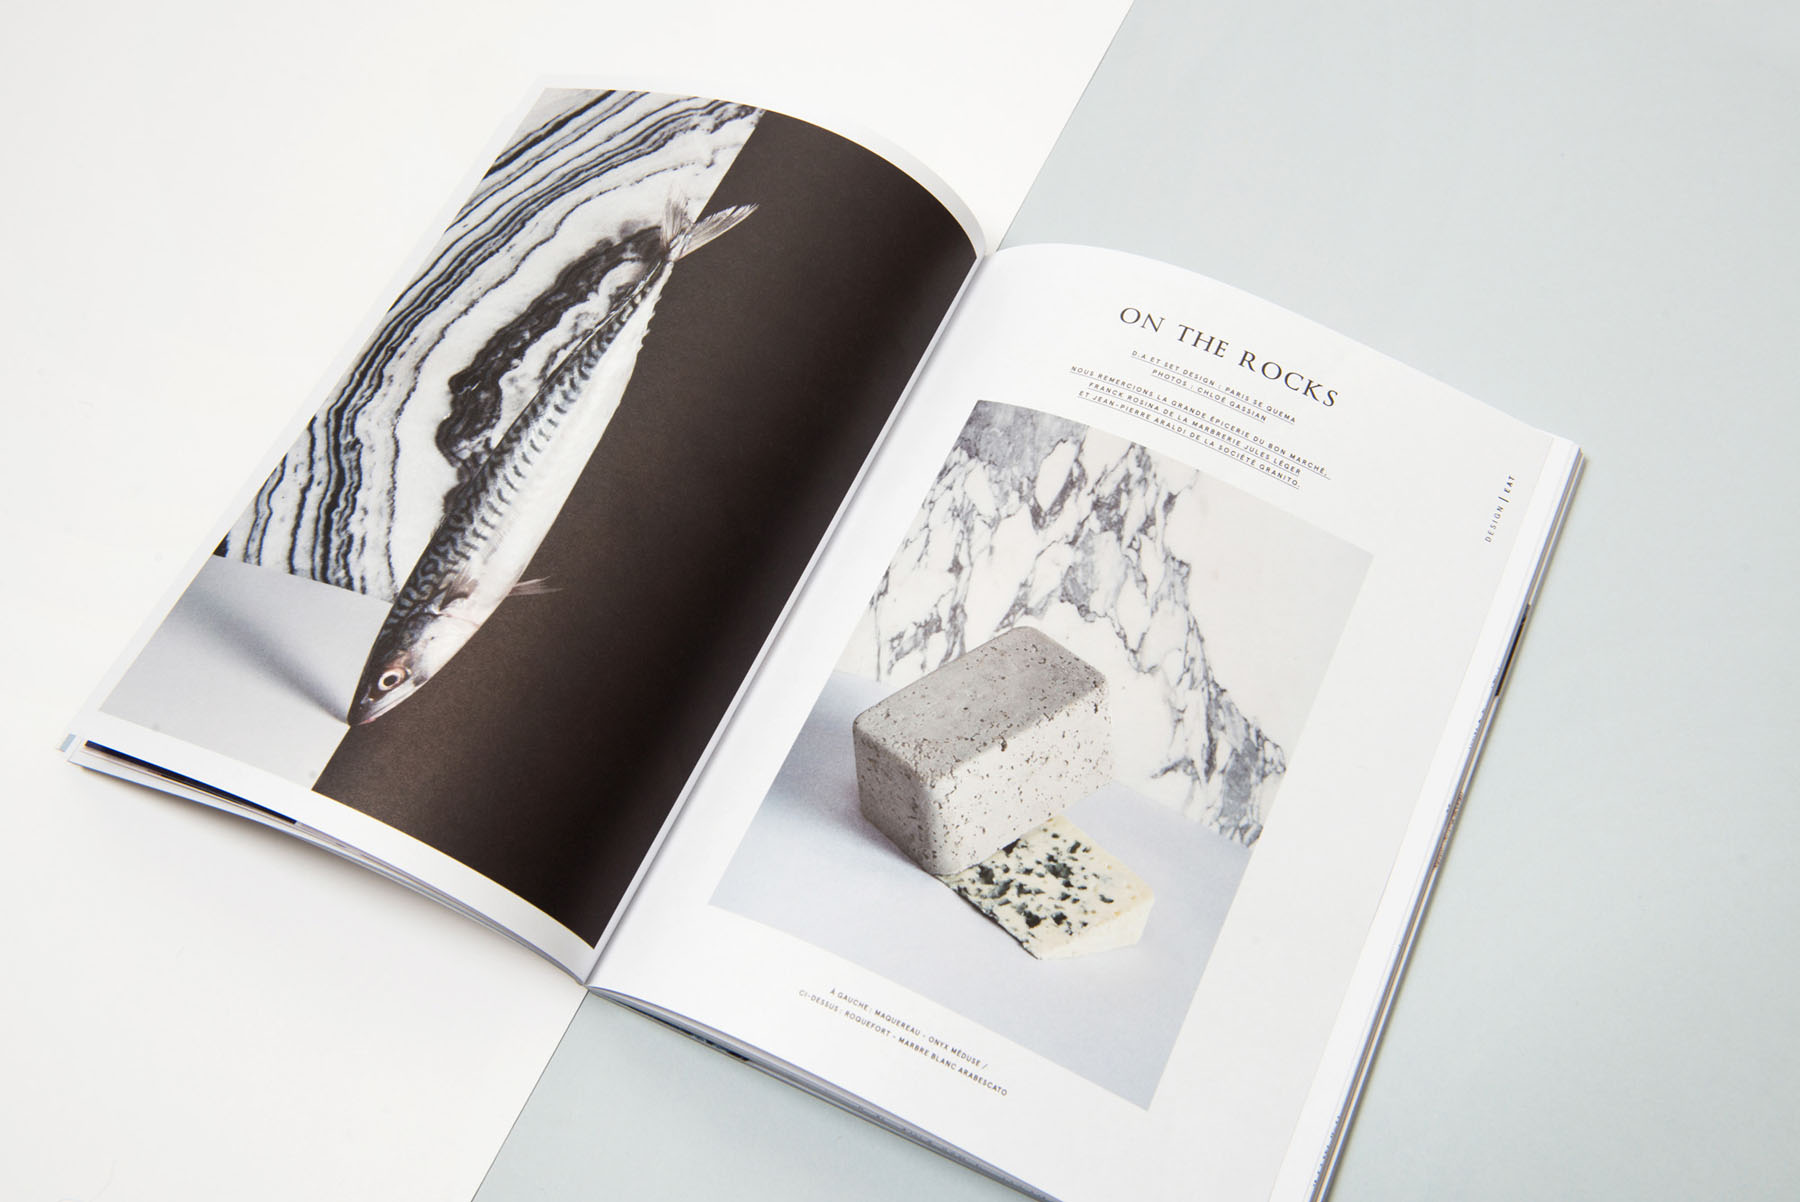 On The Rocks - Mint Magazine / Paris Se Quema & Chloé Gassian (15)